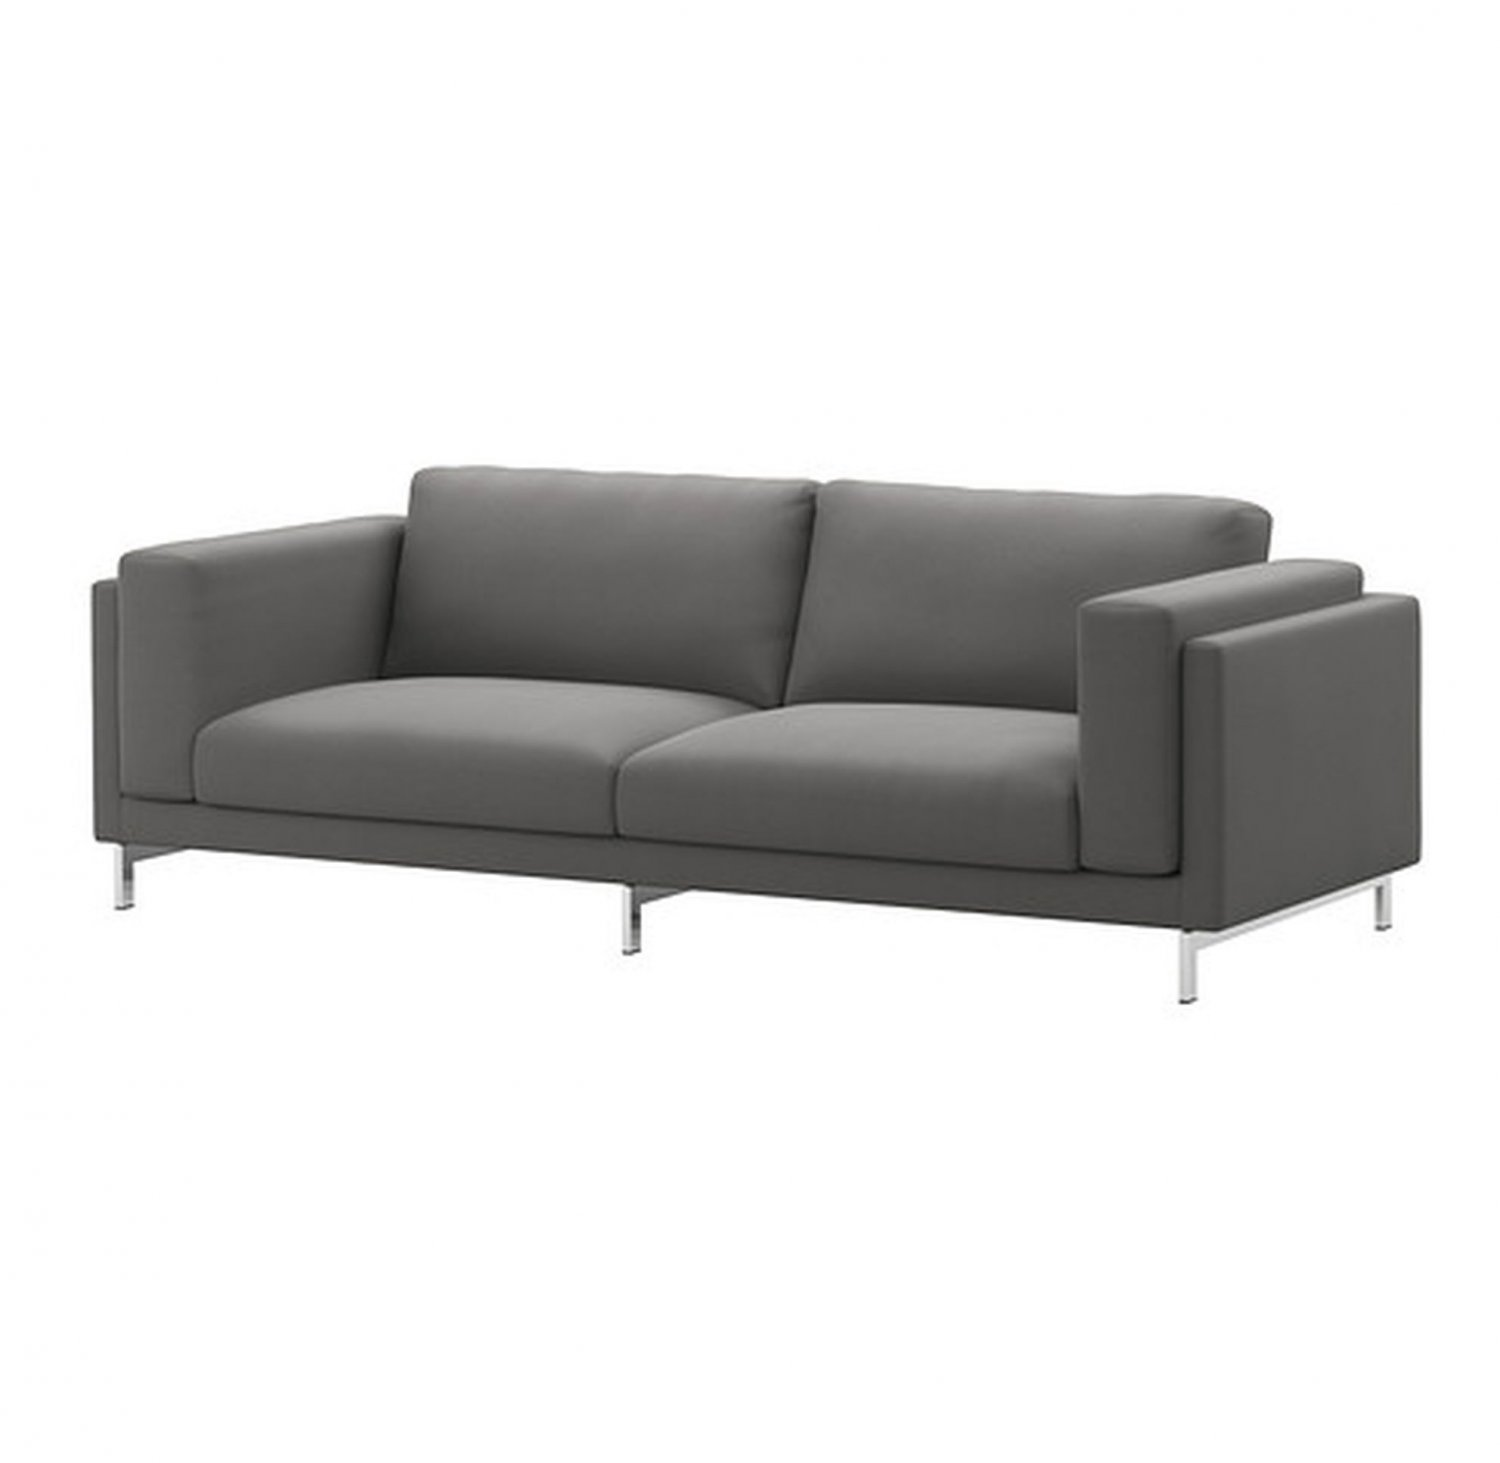 Ikea Nockeby Two Seat Sofa Ikea Nockeby 3 Seat Sofa Slipcover Cover Risane Gray Grey